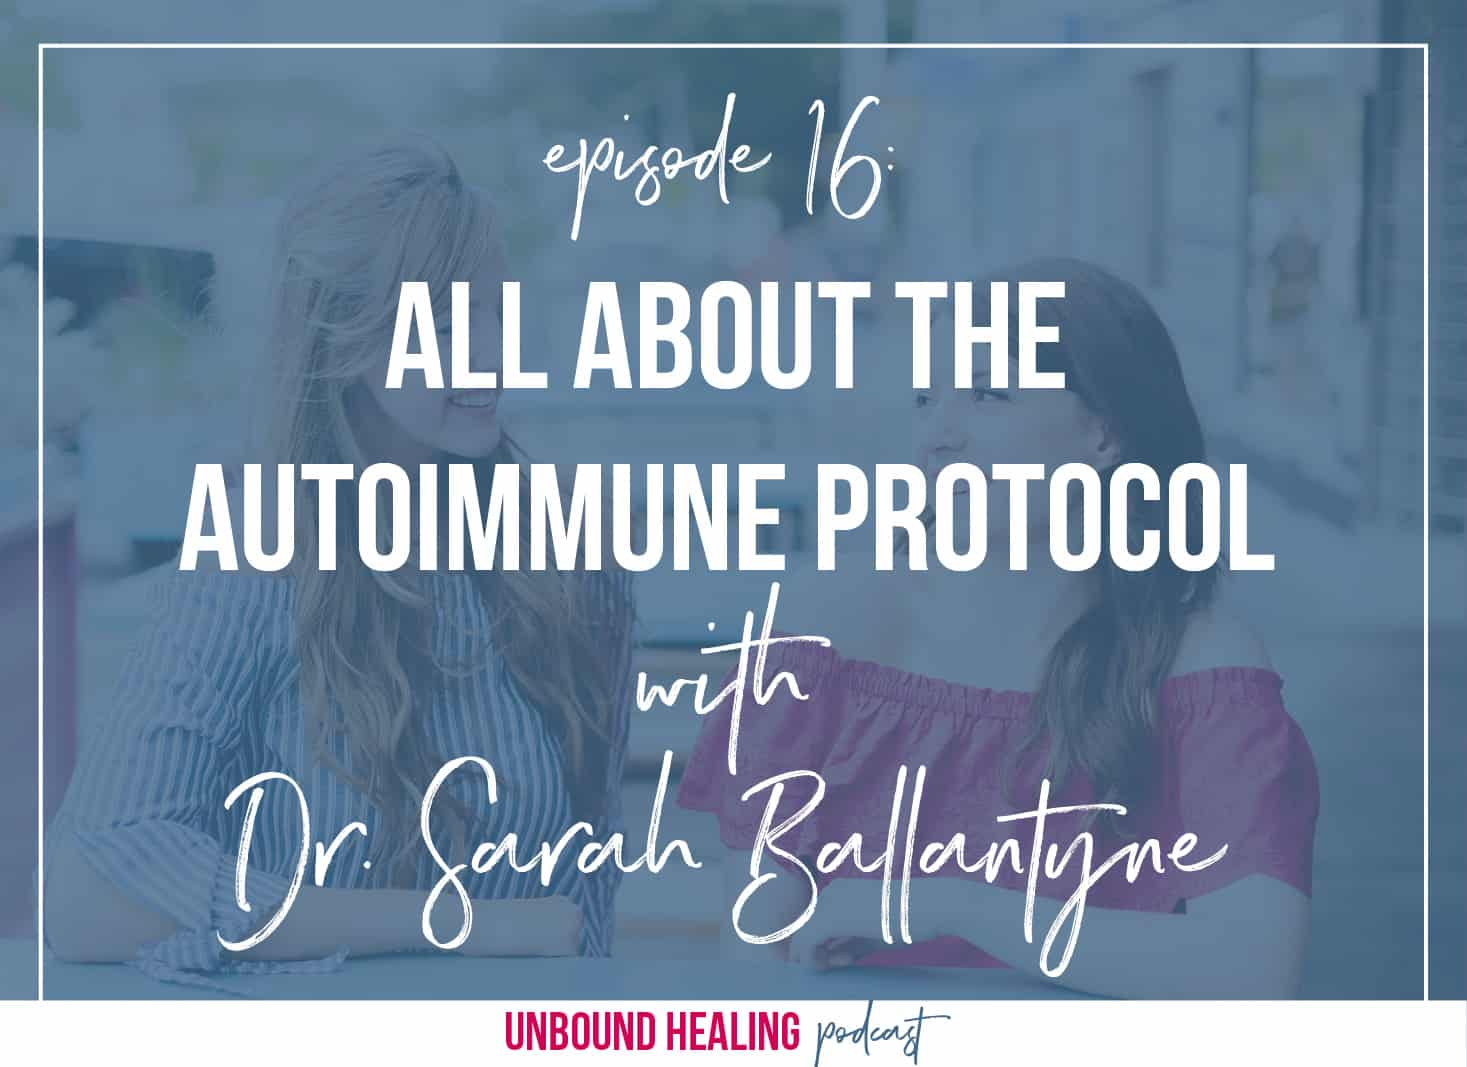 All About the Autoimmune Protocol with Dr. Sarah Ballantyne from The Paleo Mom